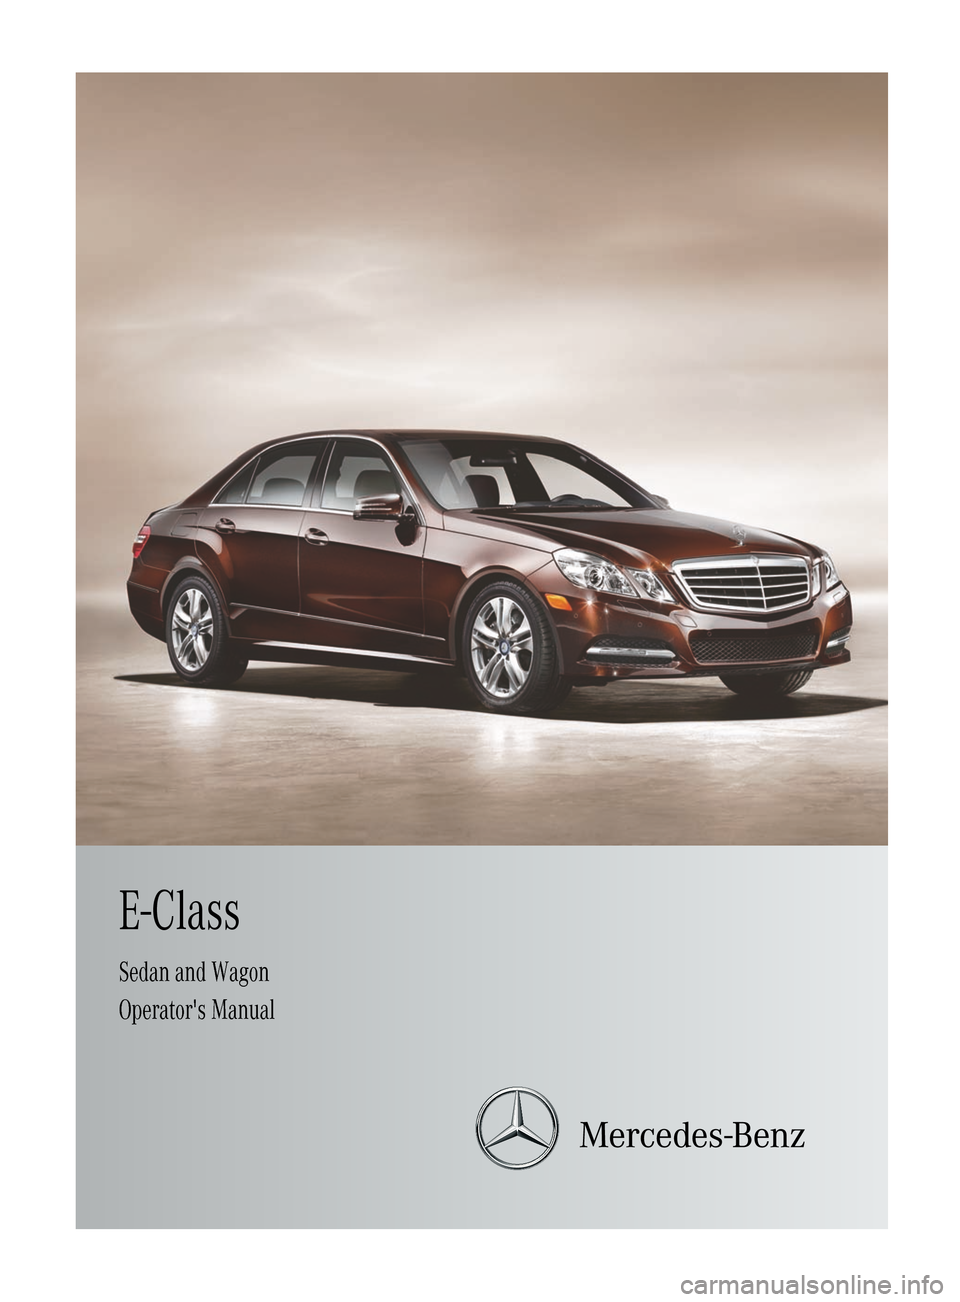 Mercedes benz e class wagon 2012 w212 owner 39 s manual for Mercedes benz online repair manual